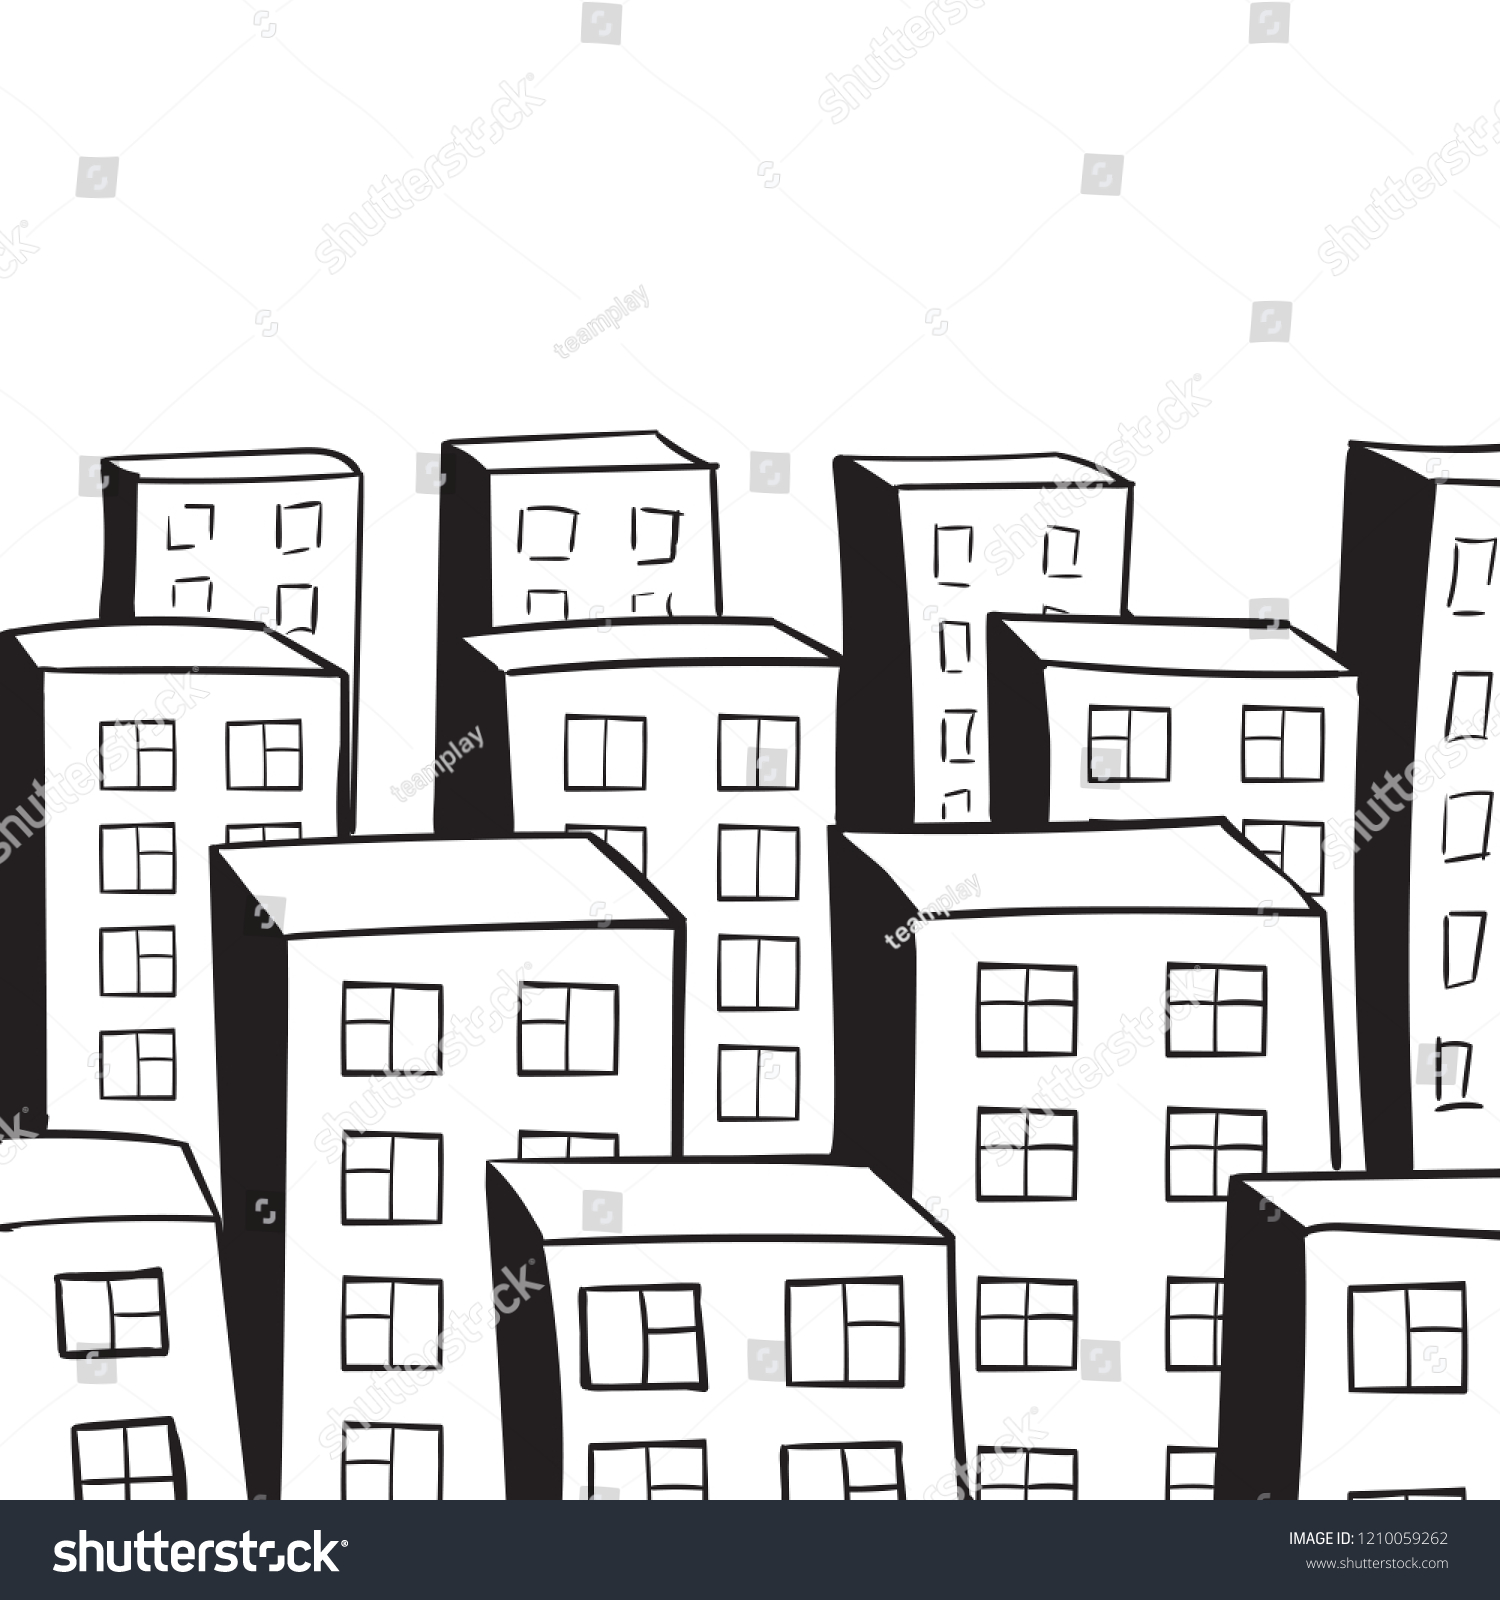 City landscape sketch of the city top view roofs of multi storey